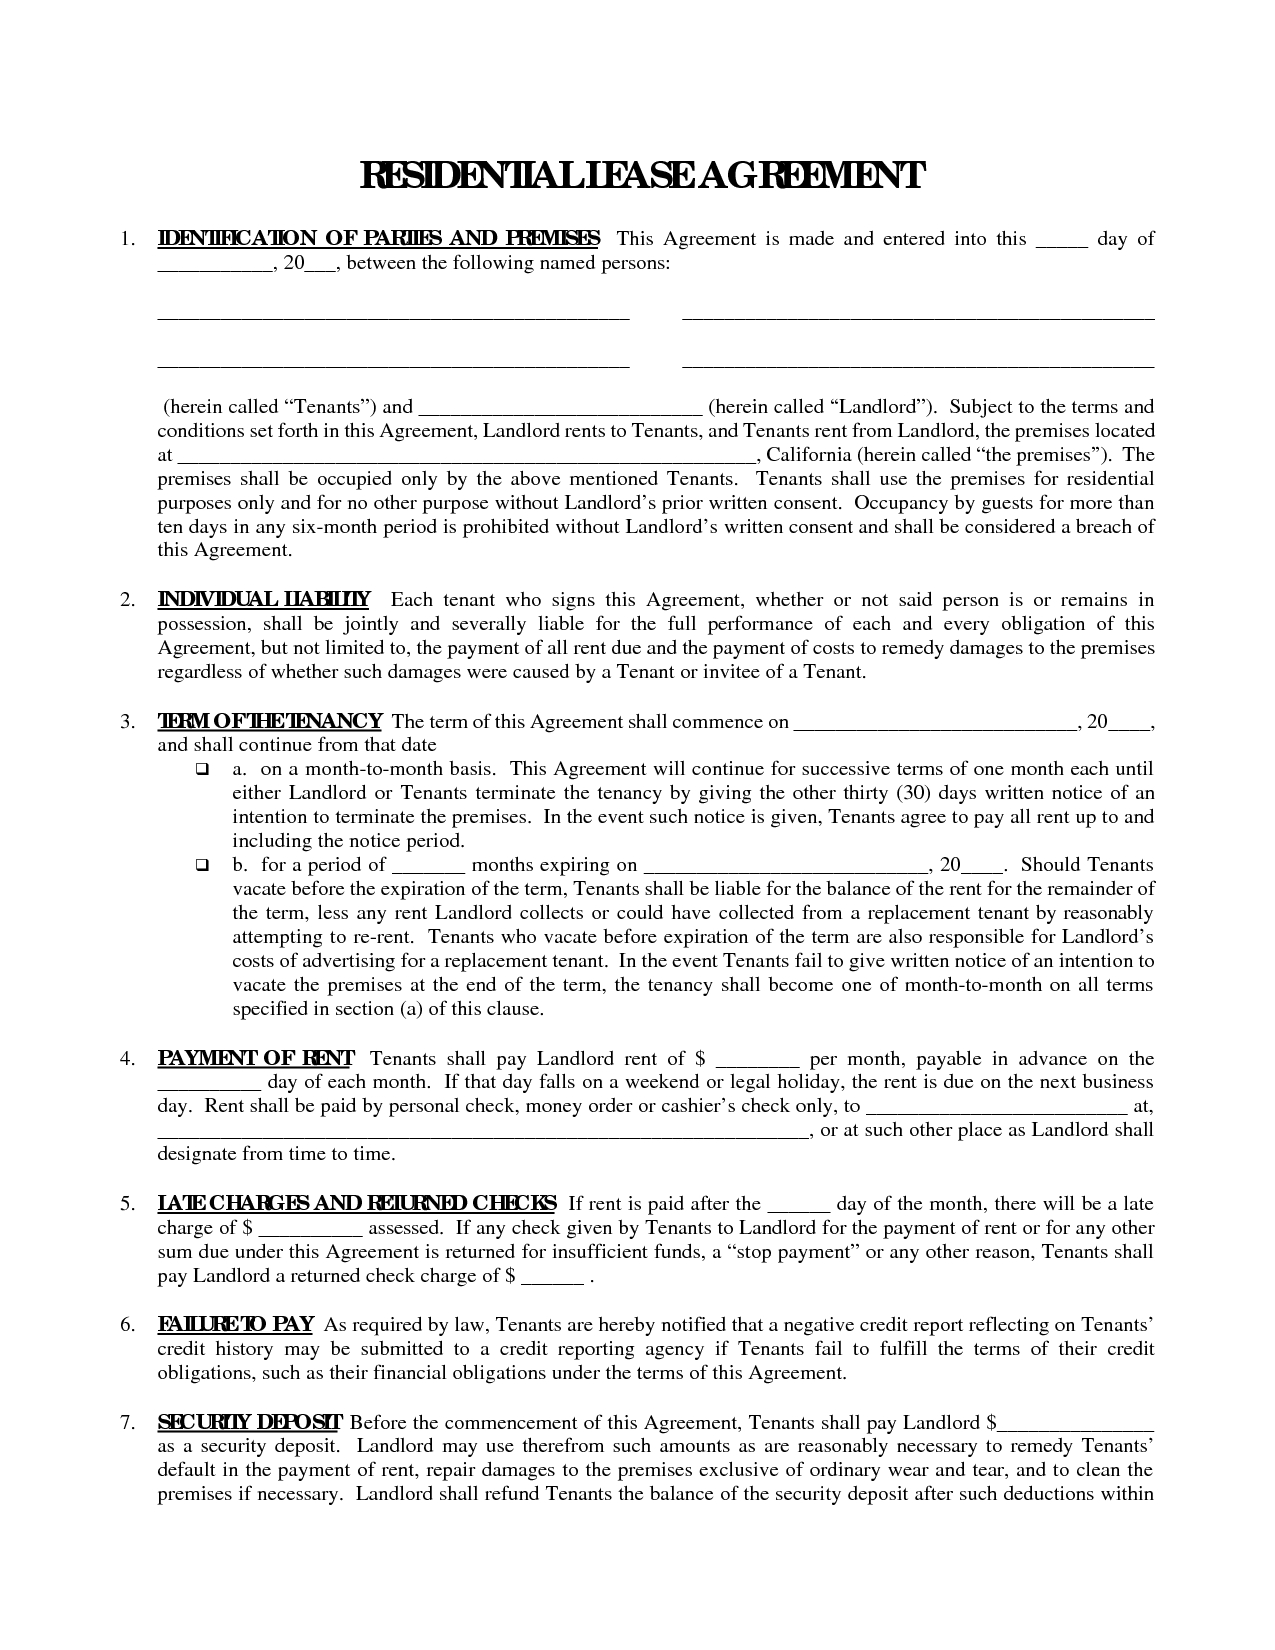 Printable Residential Free House Lease Agreement | Residential Lease - Free Printable Basic Rental Agreement